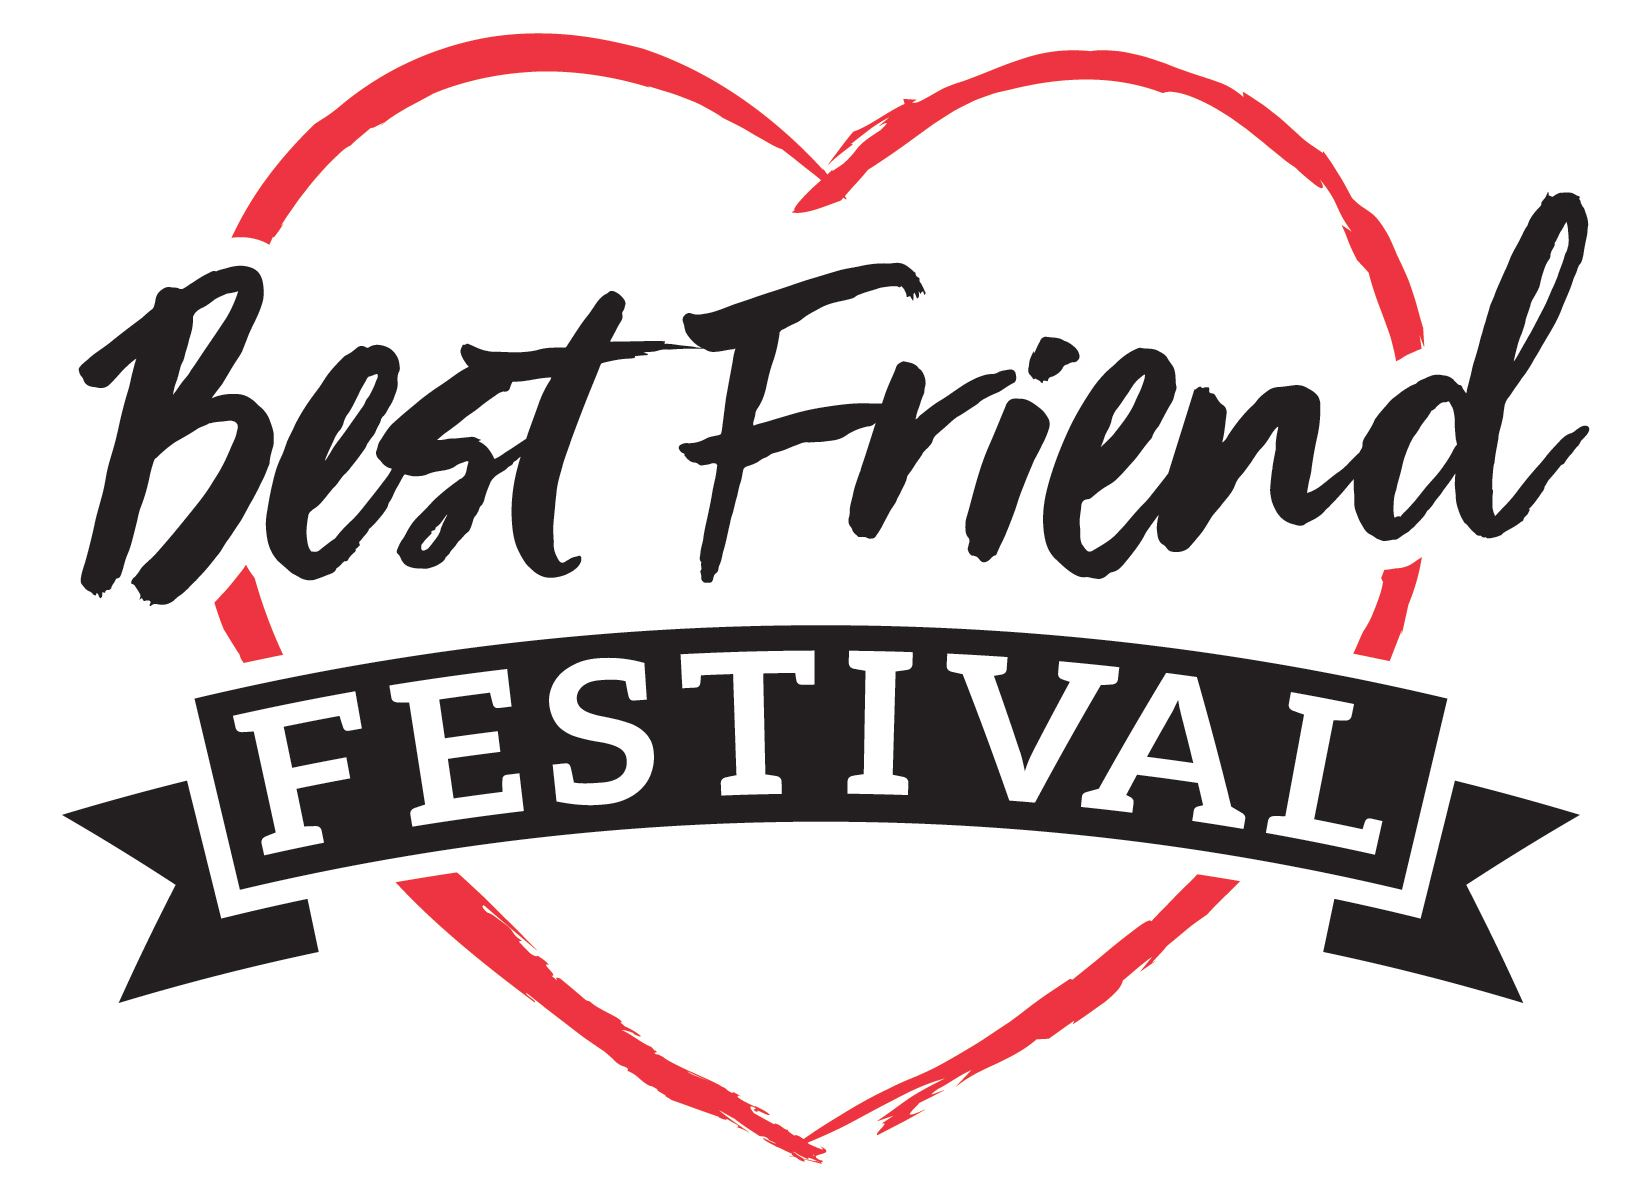 Best Friend Festival logo